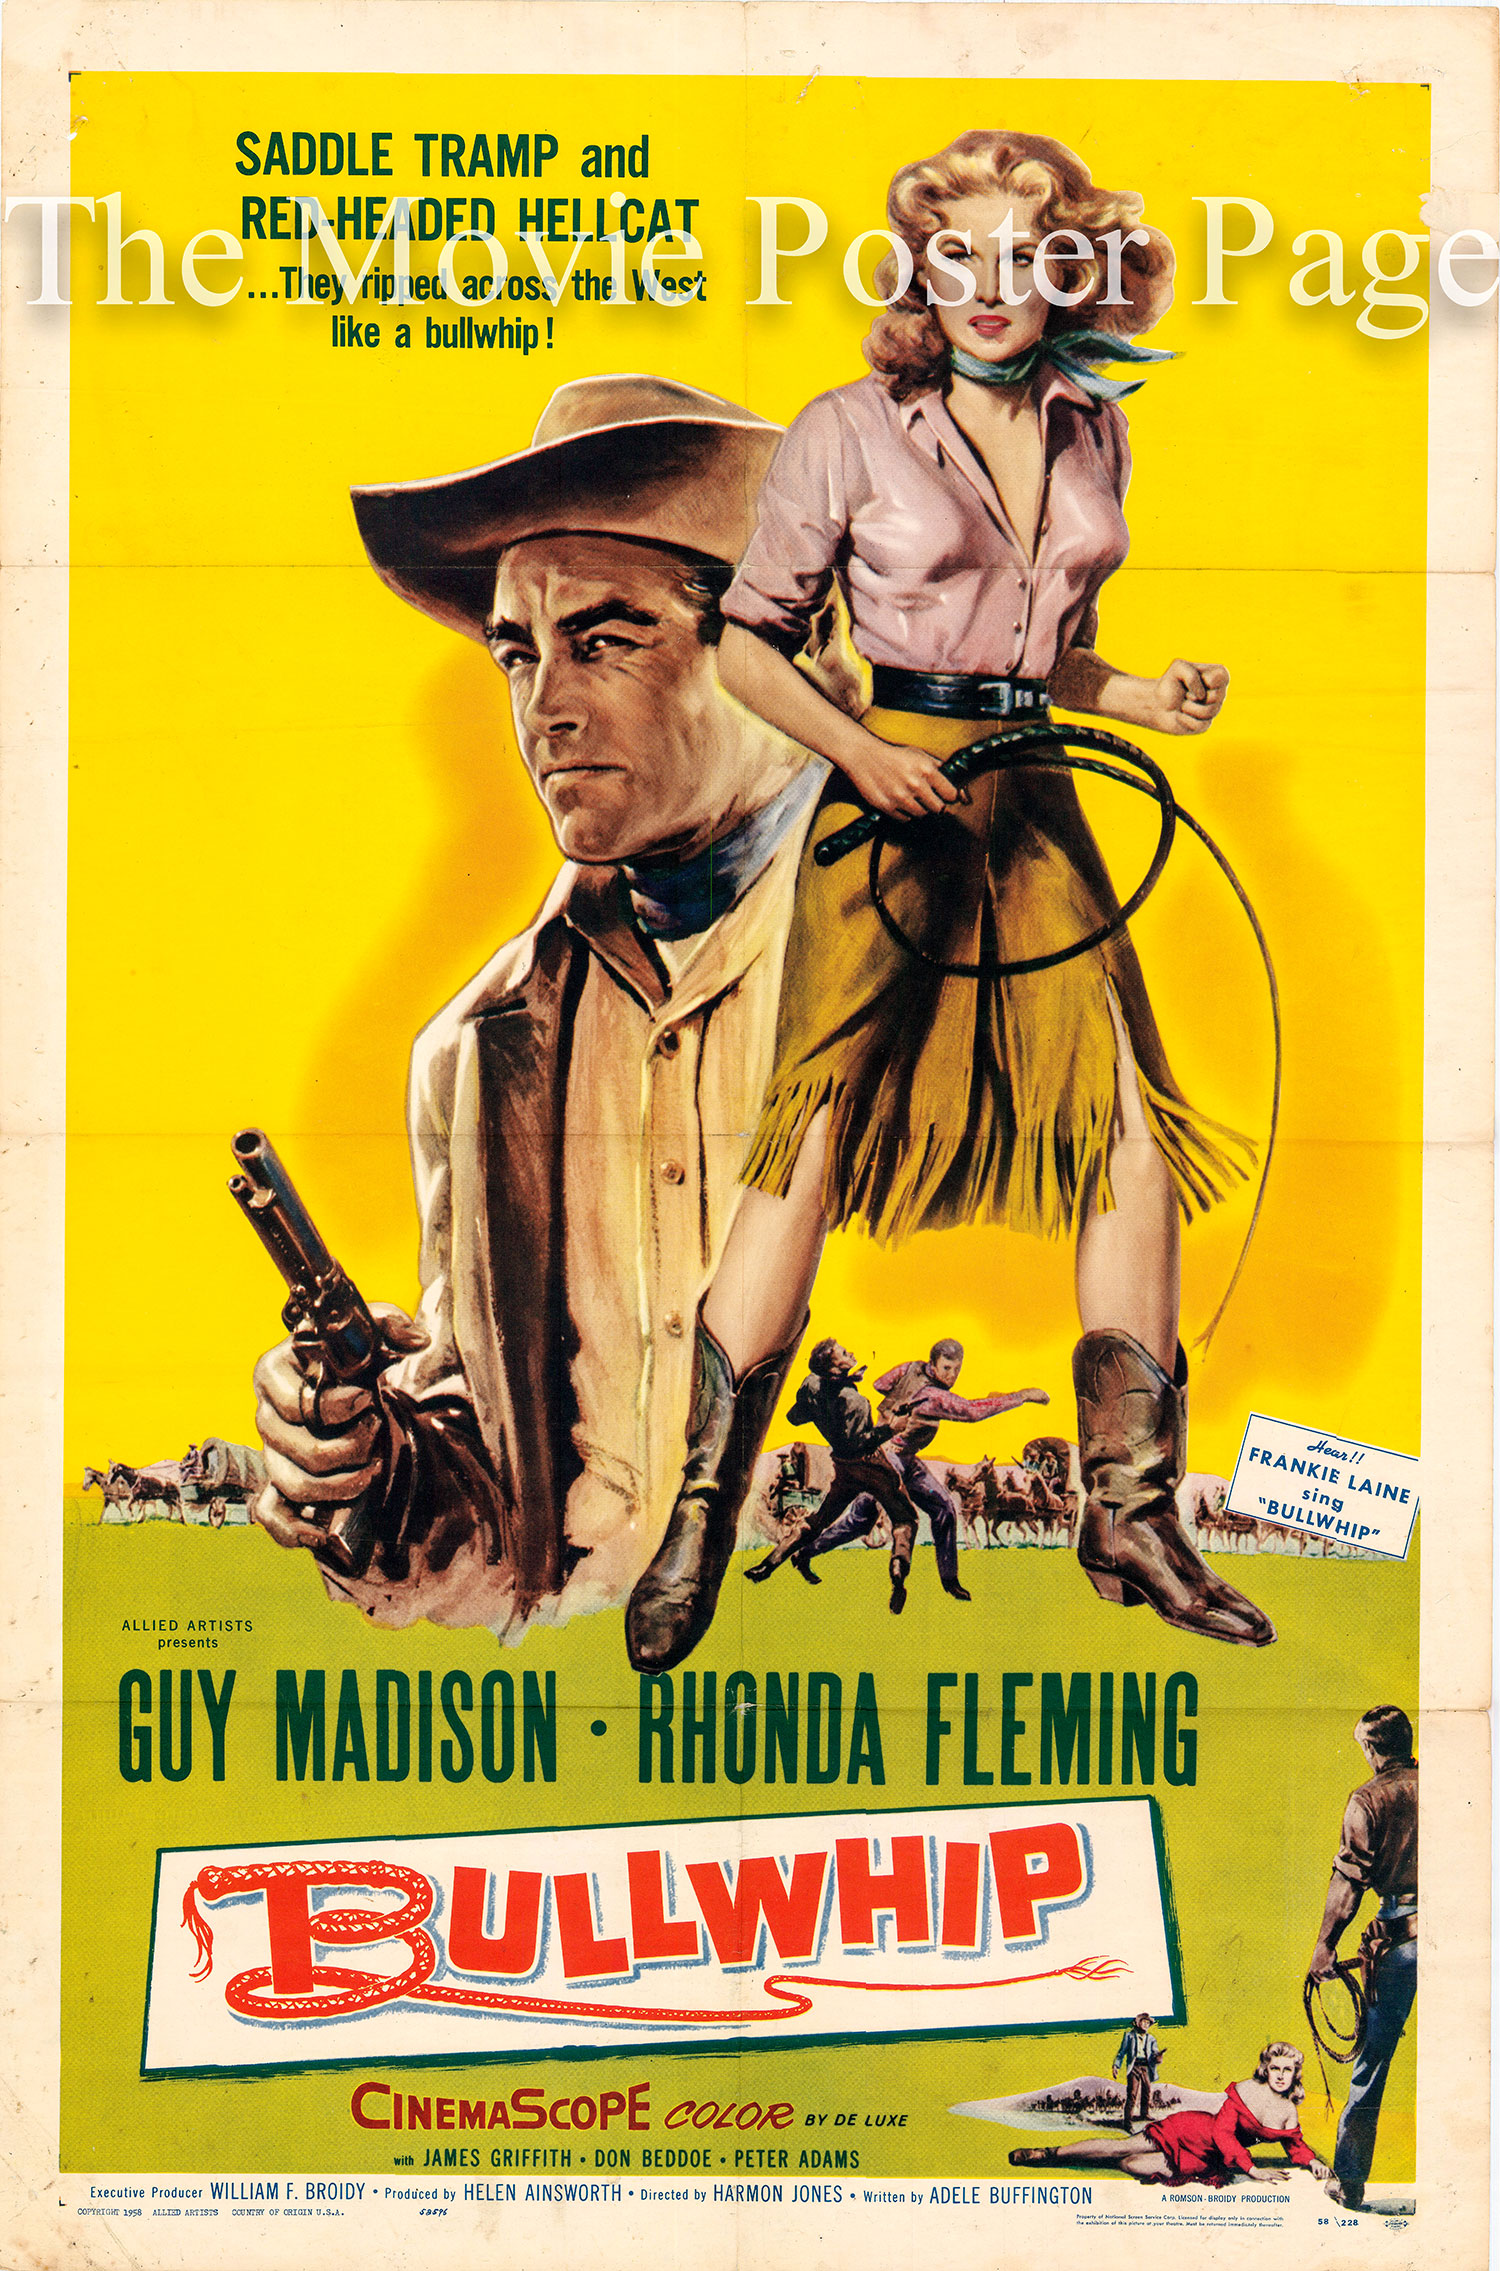 Pictured is a US one-sheet promotional poster for the 1958 Harmon Jones film Bullwhip starring Rhonda Fleming.